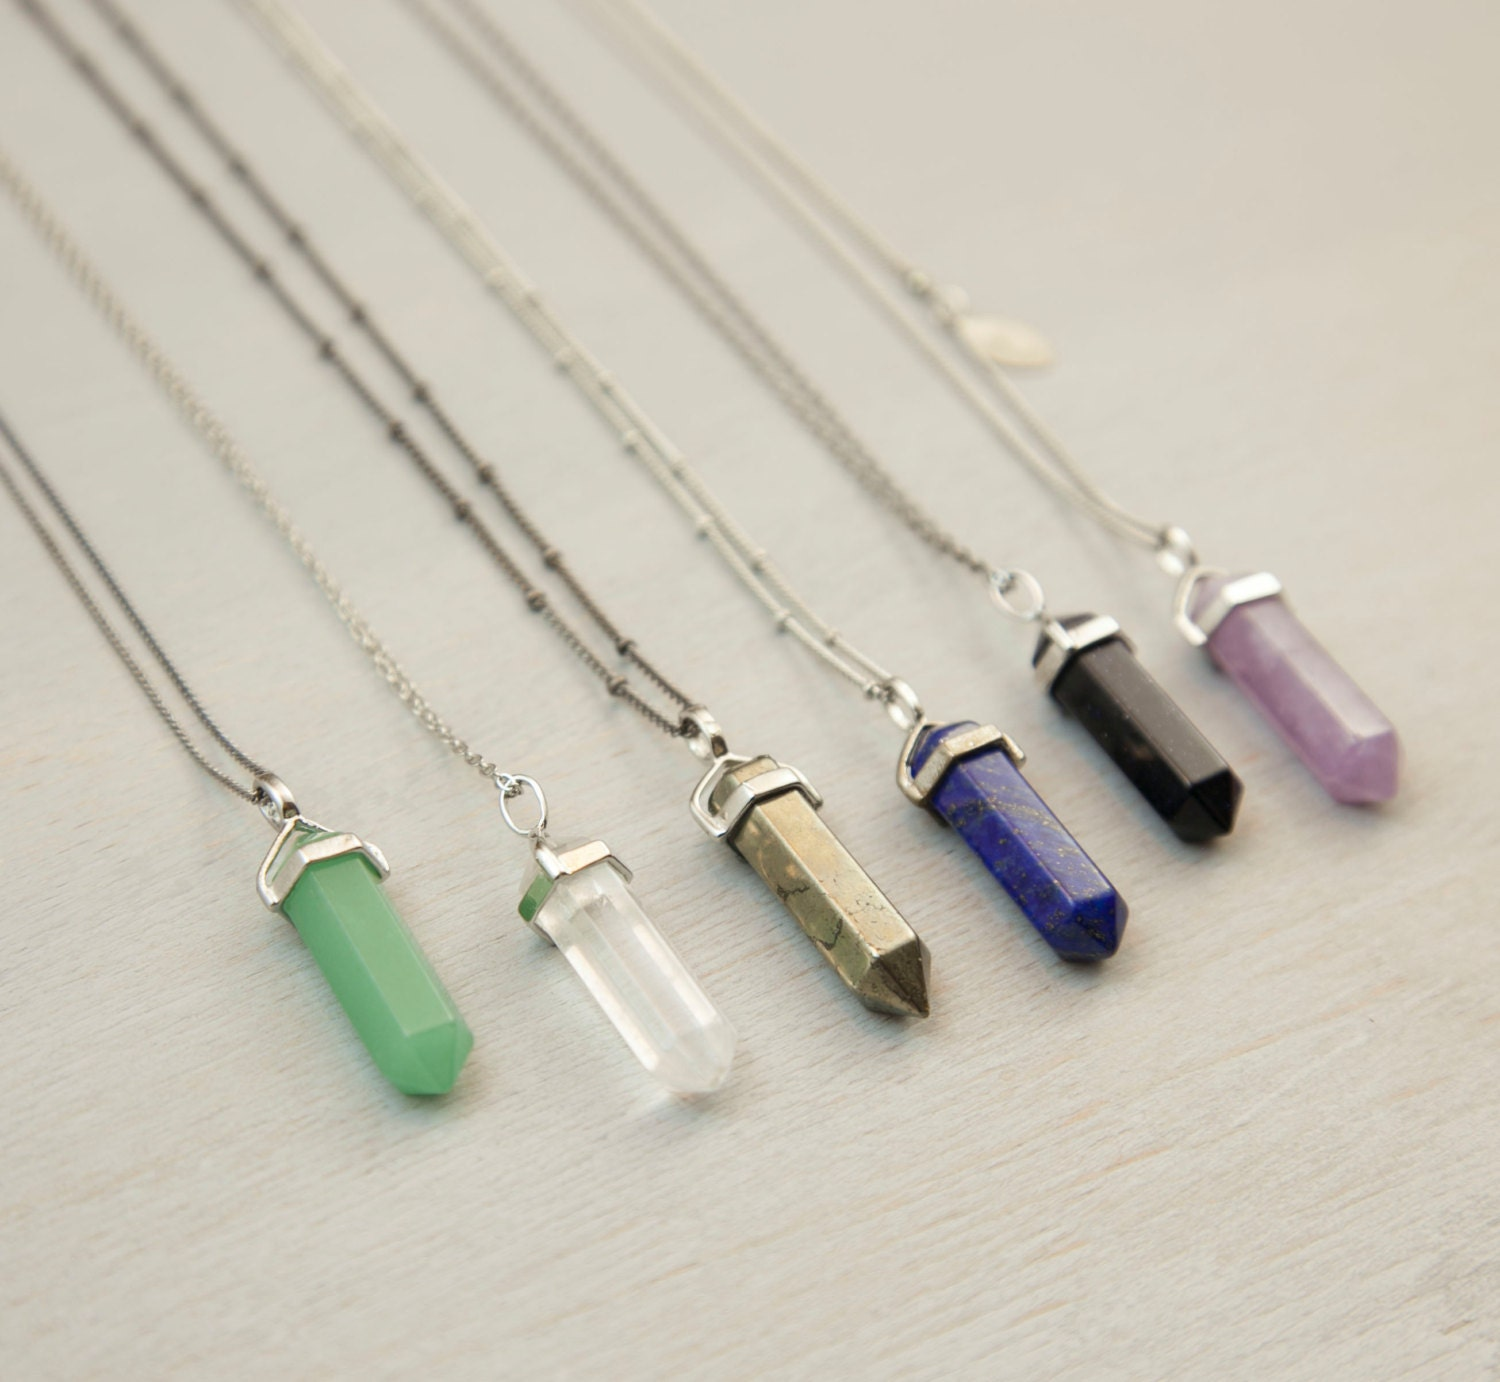 colors watches stones pendant natural hakbaho chakra horizontal necklace crystal healing product power jewelry